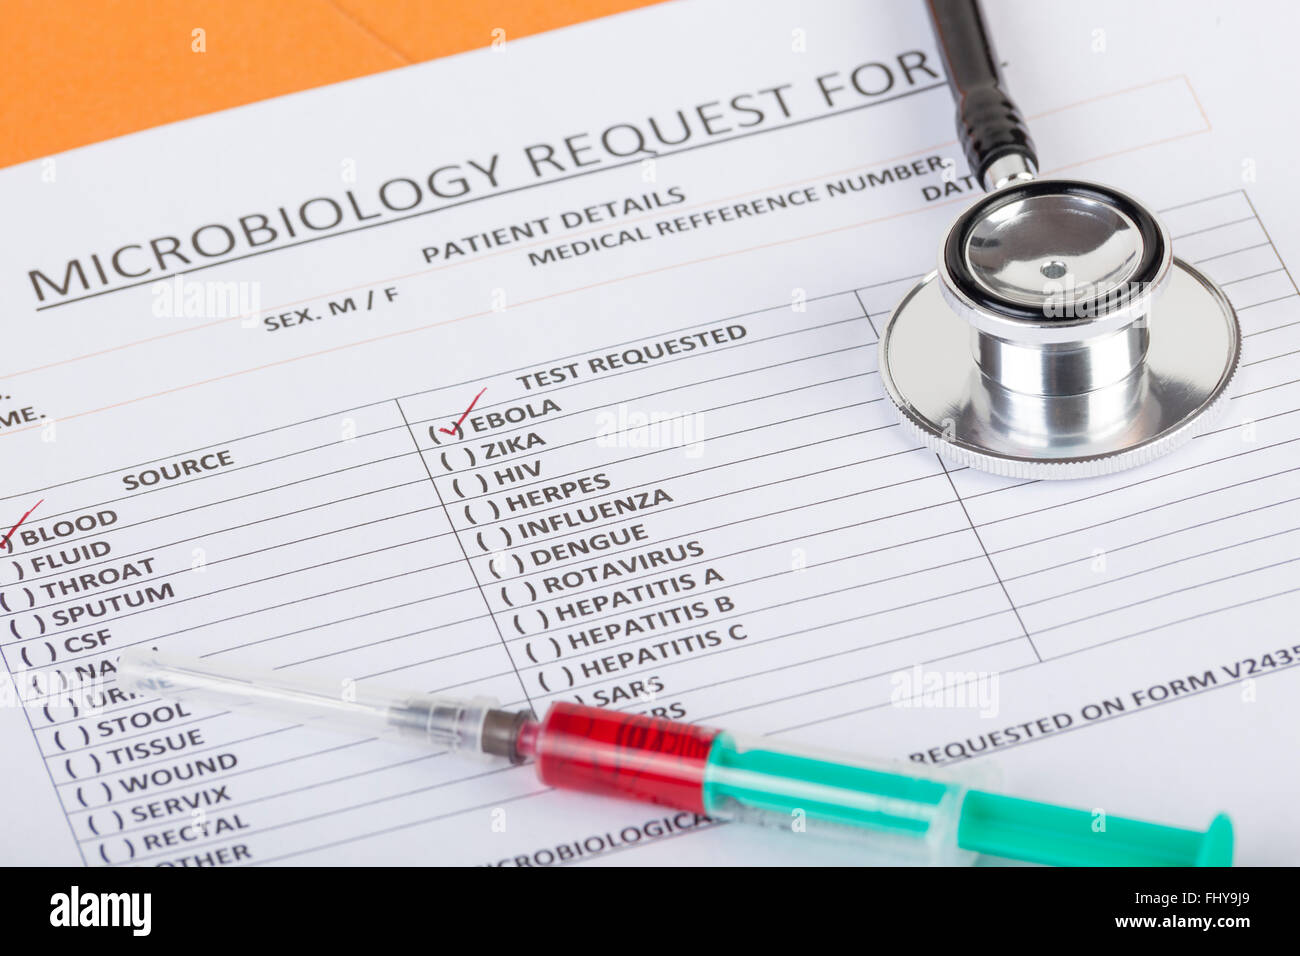 Microbiological blood test form showing a positive test result for the Ebola virus on a doctors desk with a stethoscope - Stock Image